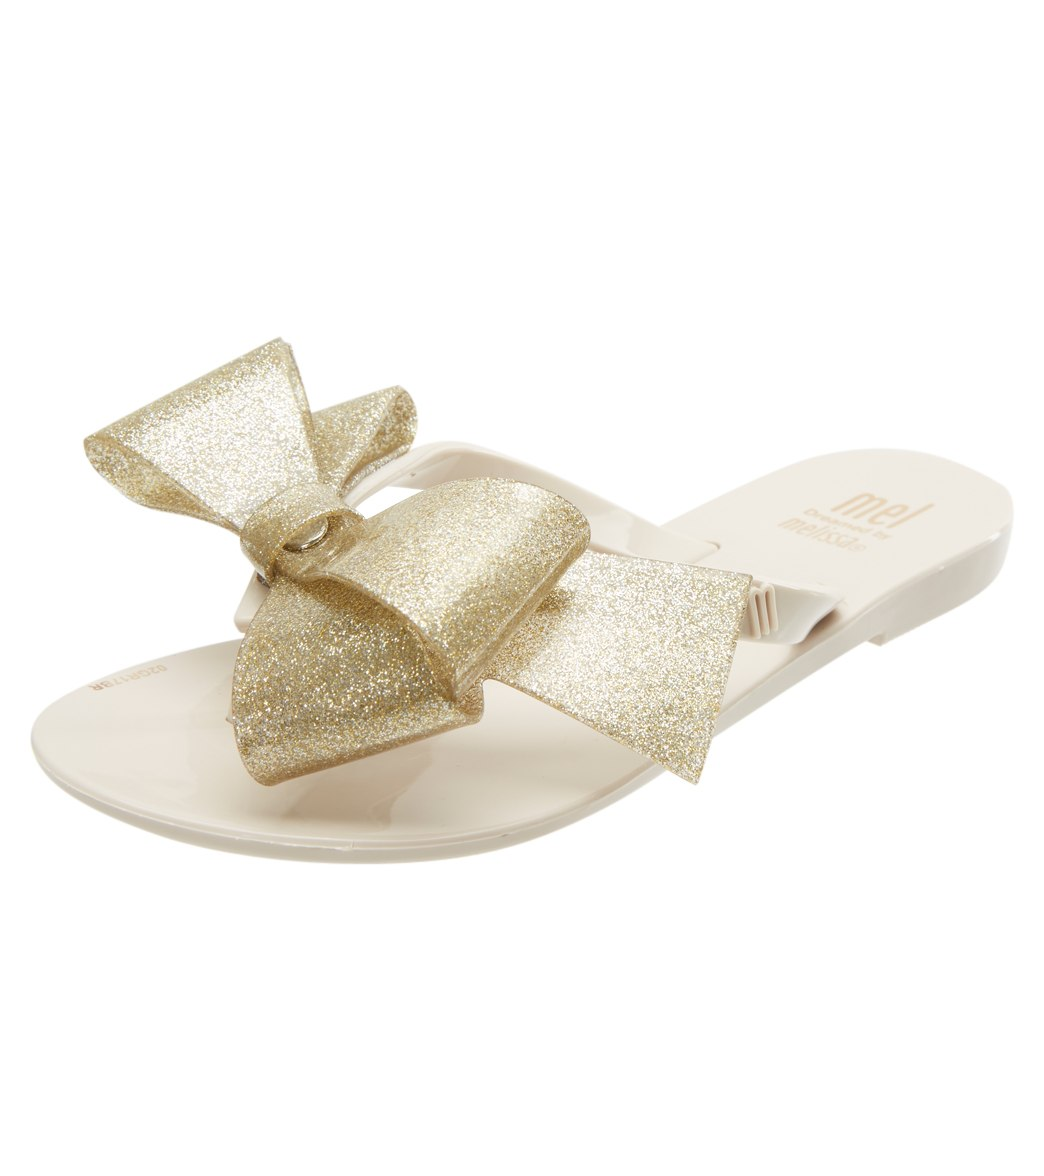 f0bb6305d17aa6 Mel by Melissa Girls  Harmonic Bow III Flip Flop Sandal (Little Kid) at  SwimOutlet.com - Free Shipping